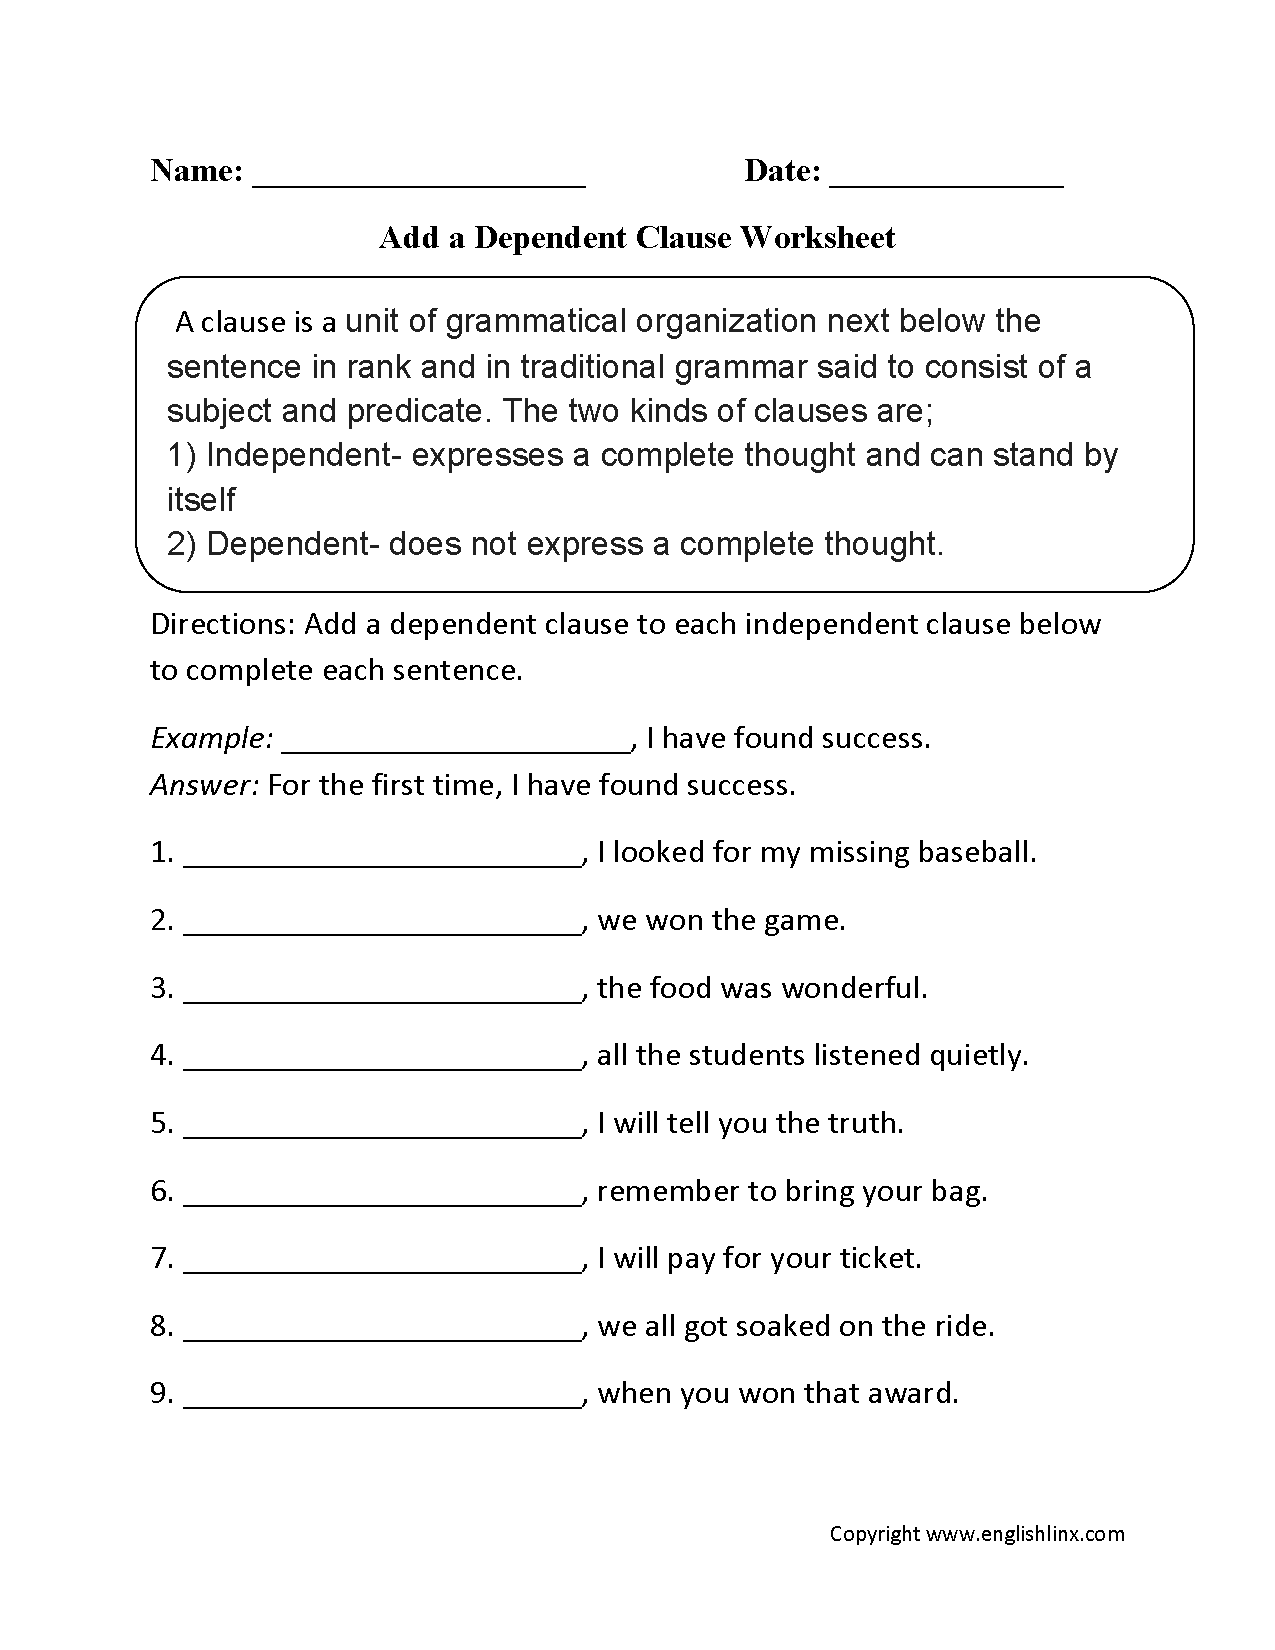 Worksheets Basic Grammar Worksheets add dependent clause worksheets gr 4 grammar pinterest grammar